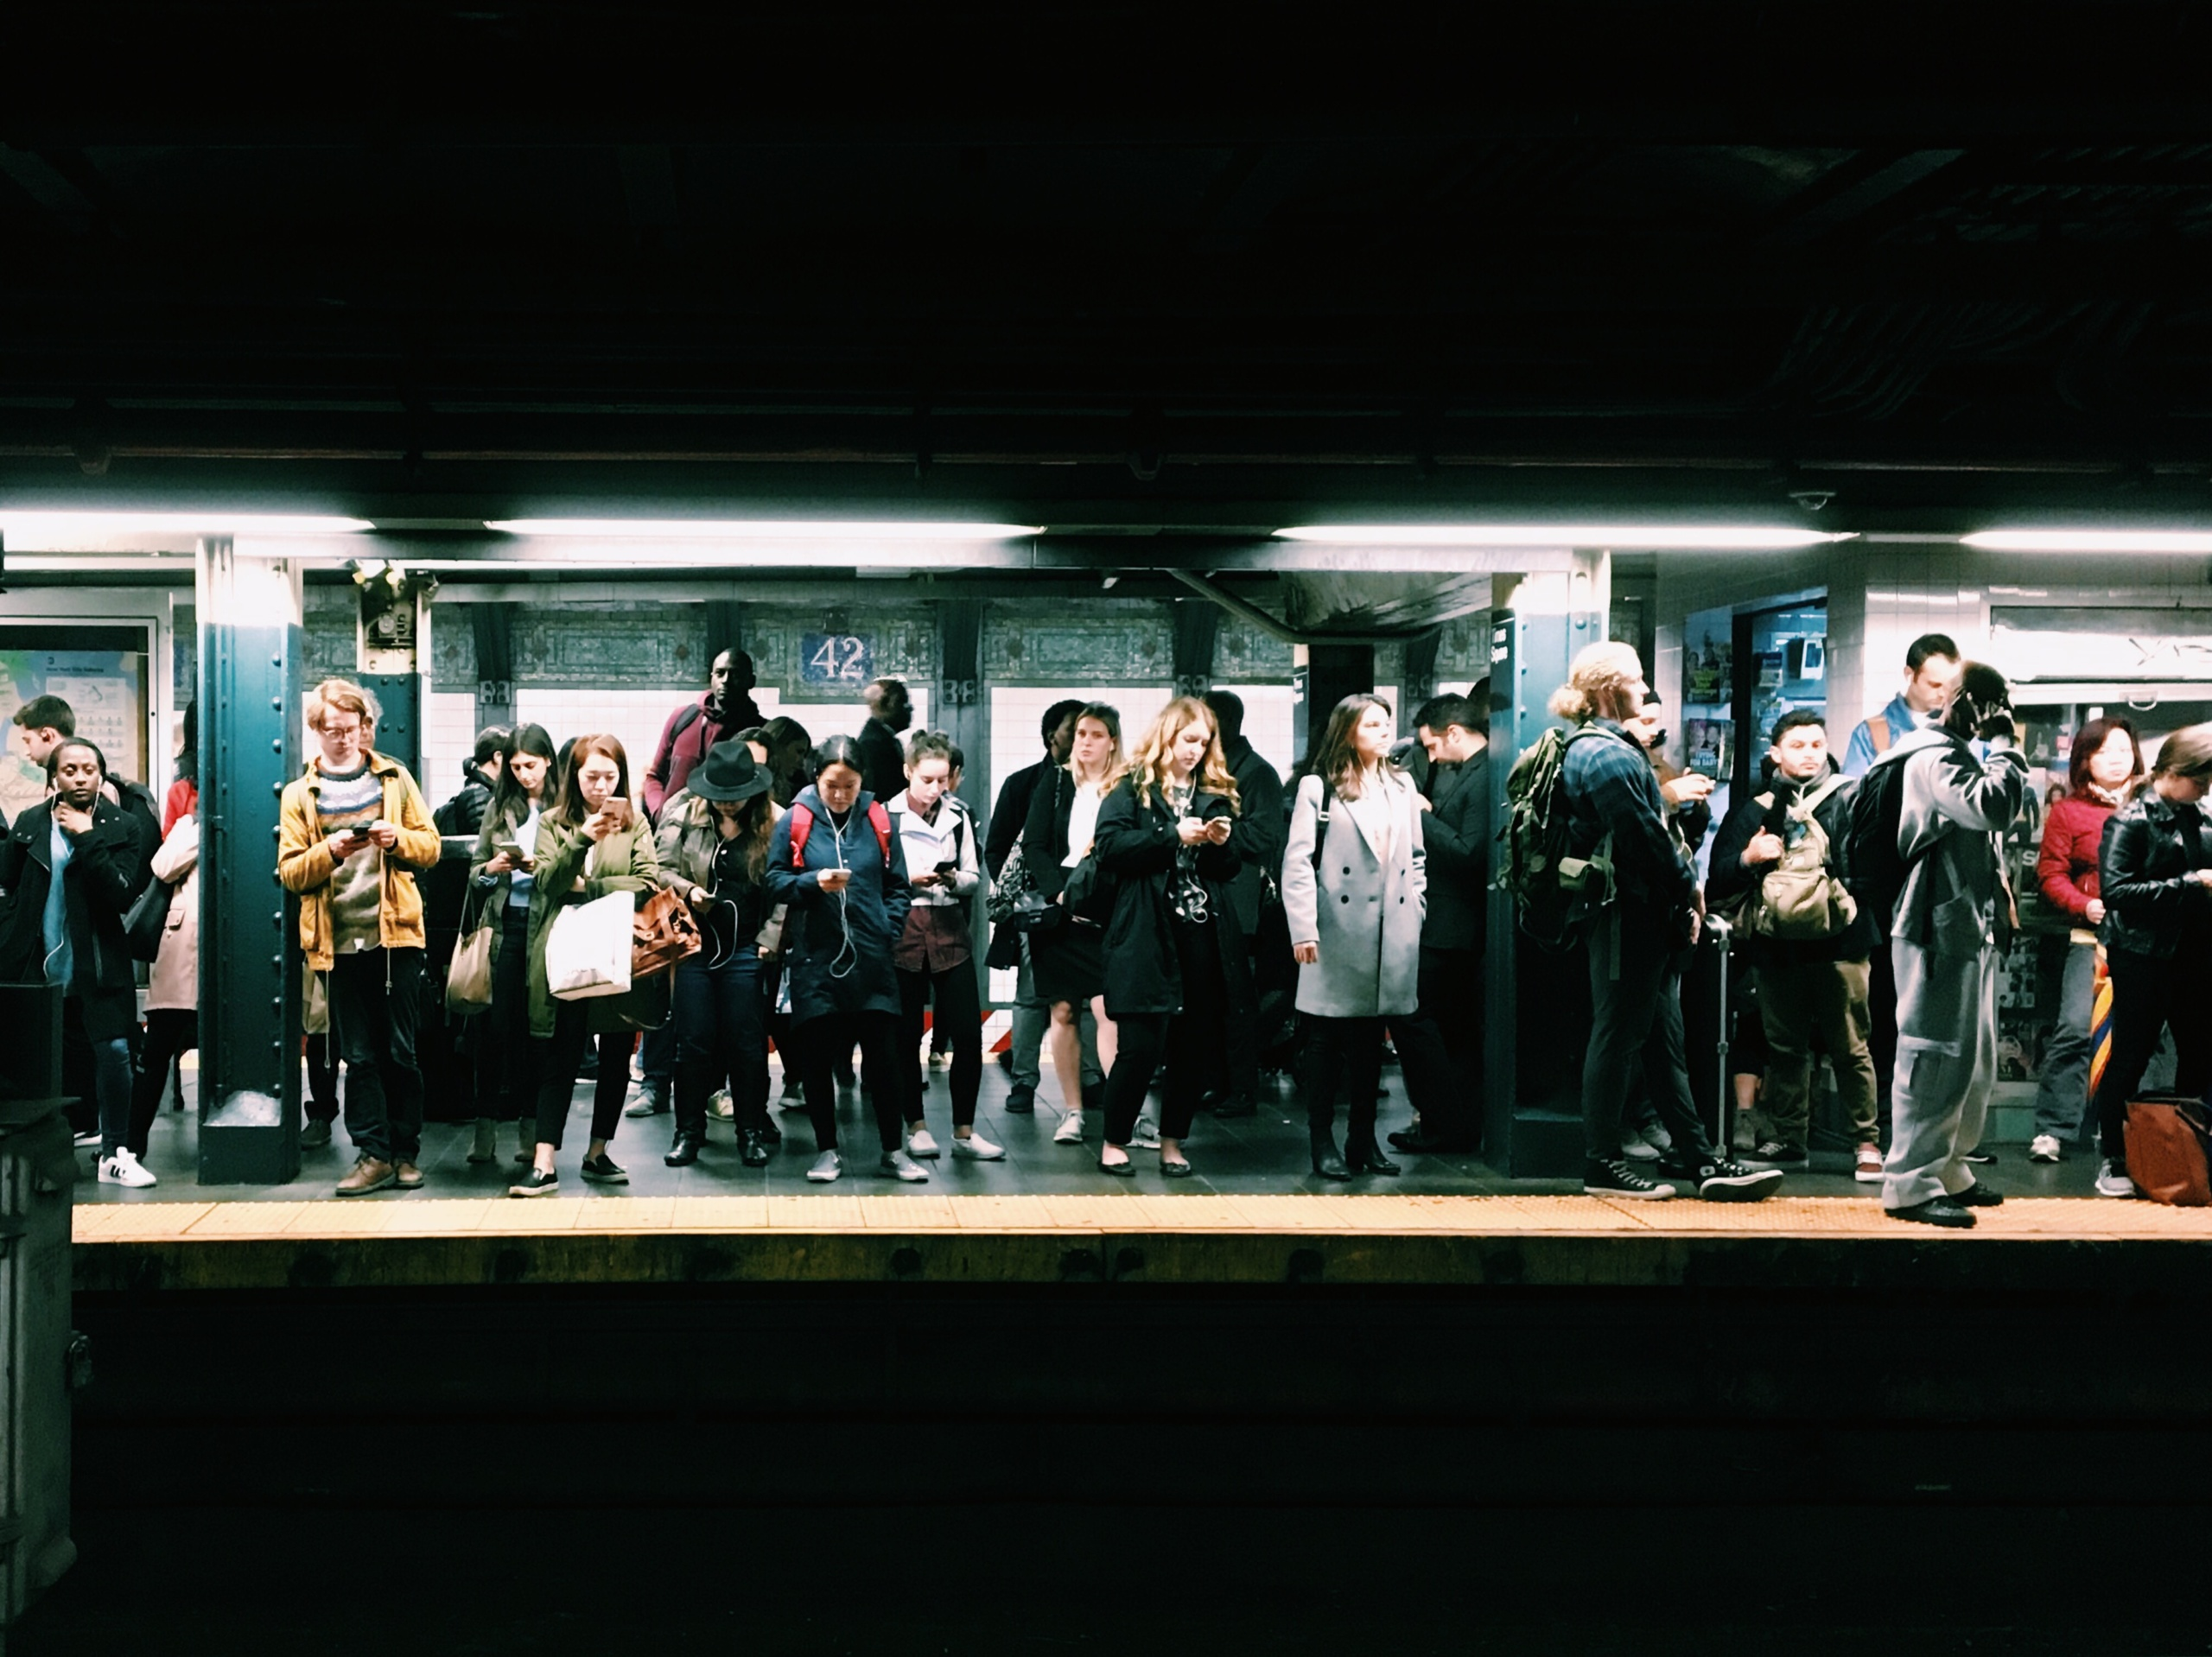 Photo of people waiting for the subway